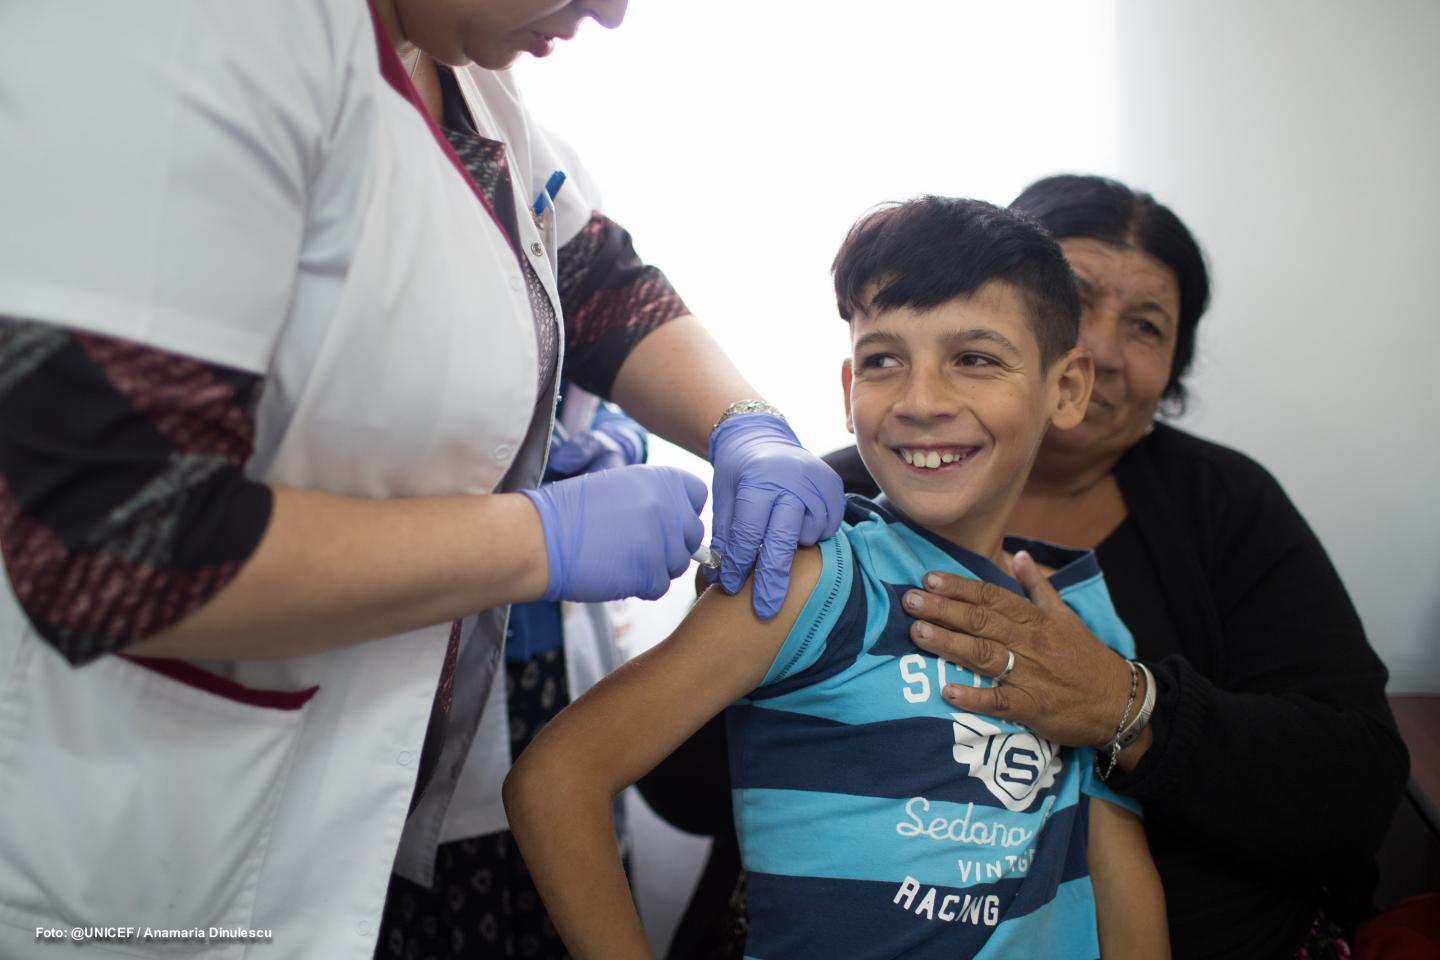 A boy is vaccinated in the town of Strehaia, Southwestern Romania. Children were recently vaccinated during a door-to-door information and vaccination catch up campaign organized by the Ministry of Health with support from UNICEF and the World Health Organization.